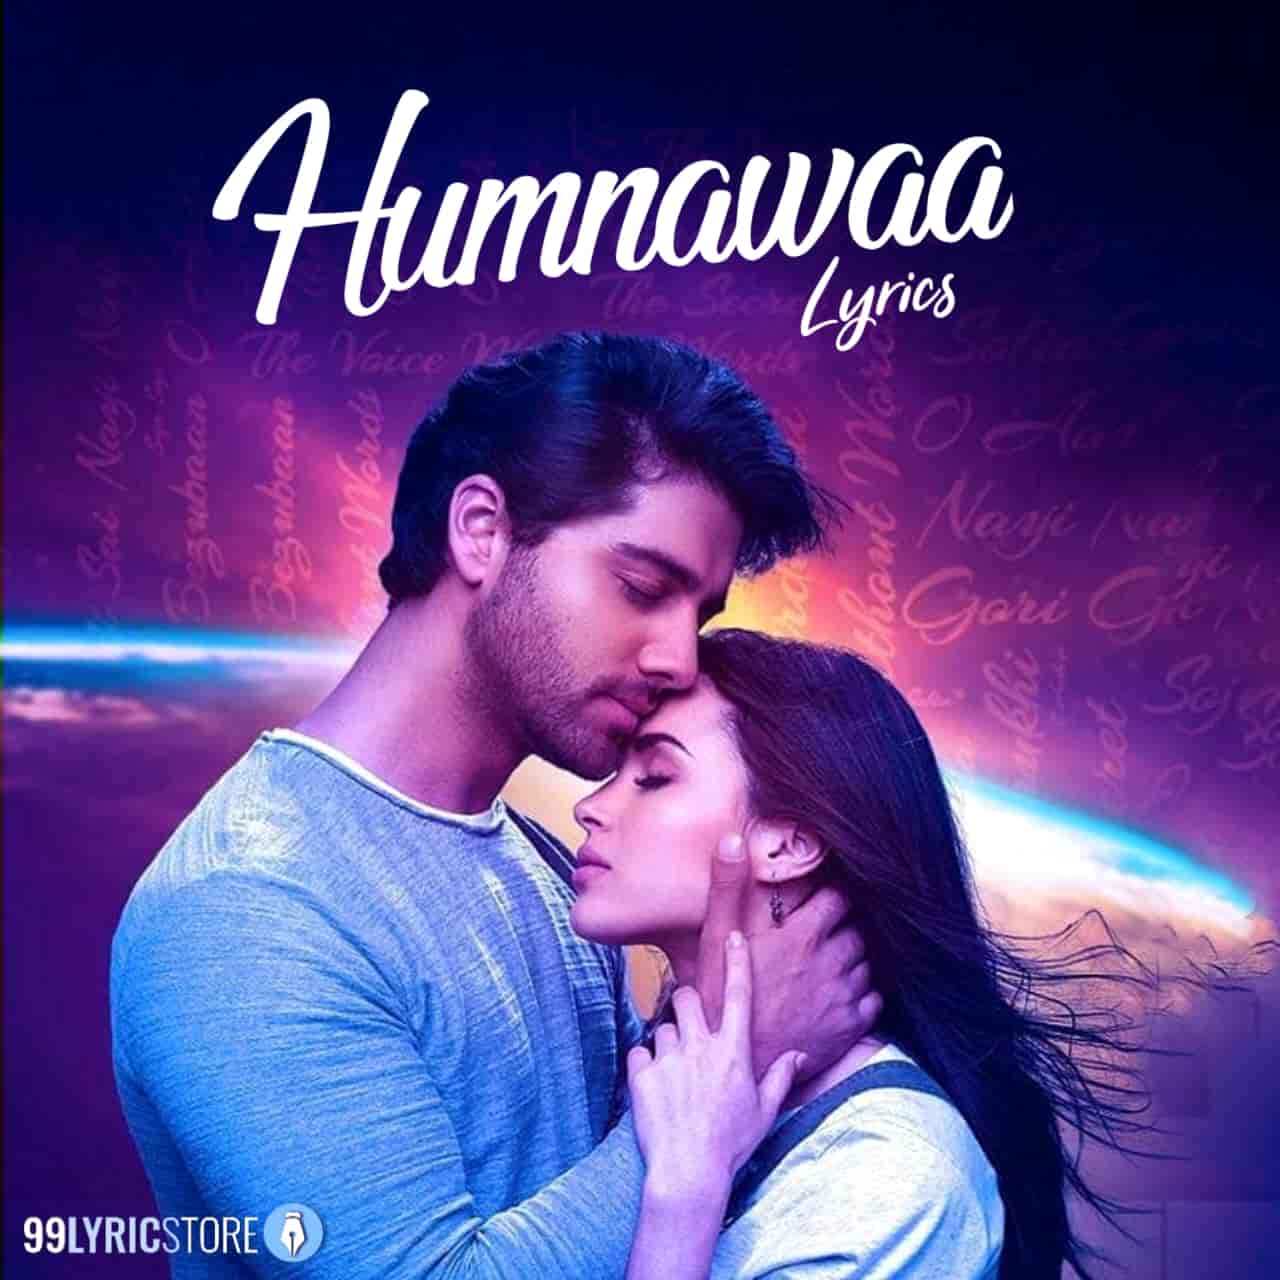 """Humnawaa Lyrics :- Feel the fire of love in this love season by Humnawaa Song from legend A.R. Rahman's music album """"99Songs"""" which is very beautifully sung by Armaan Malik, A.R Rahman and Shashaa Tirupati. Music of this song given by great musician A.R. Rahman while this beautiful track Humnawaa lyrics has penned by Dilshaad Shabbir Shaikh. This song is presented by Sony Music India label."""